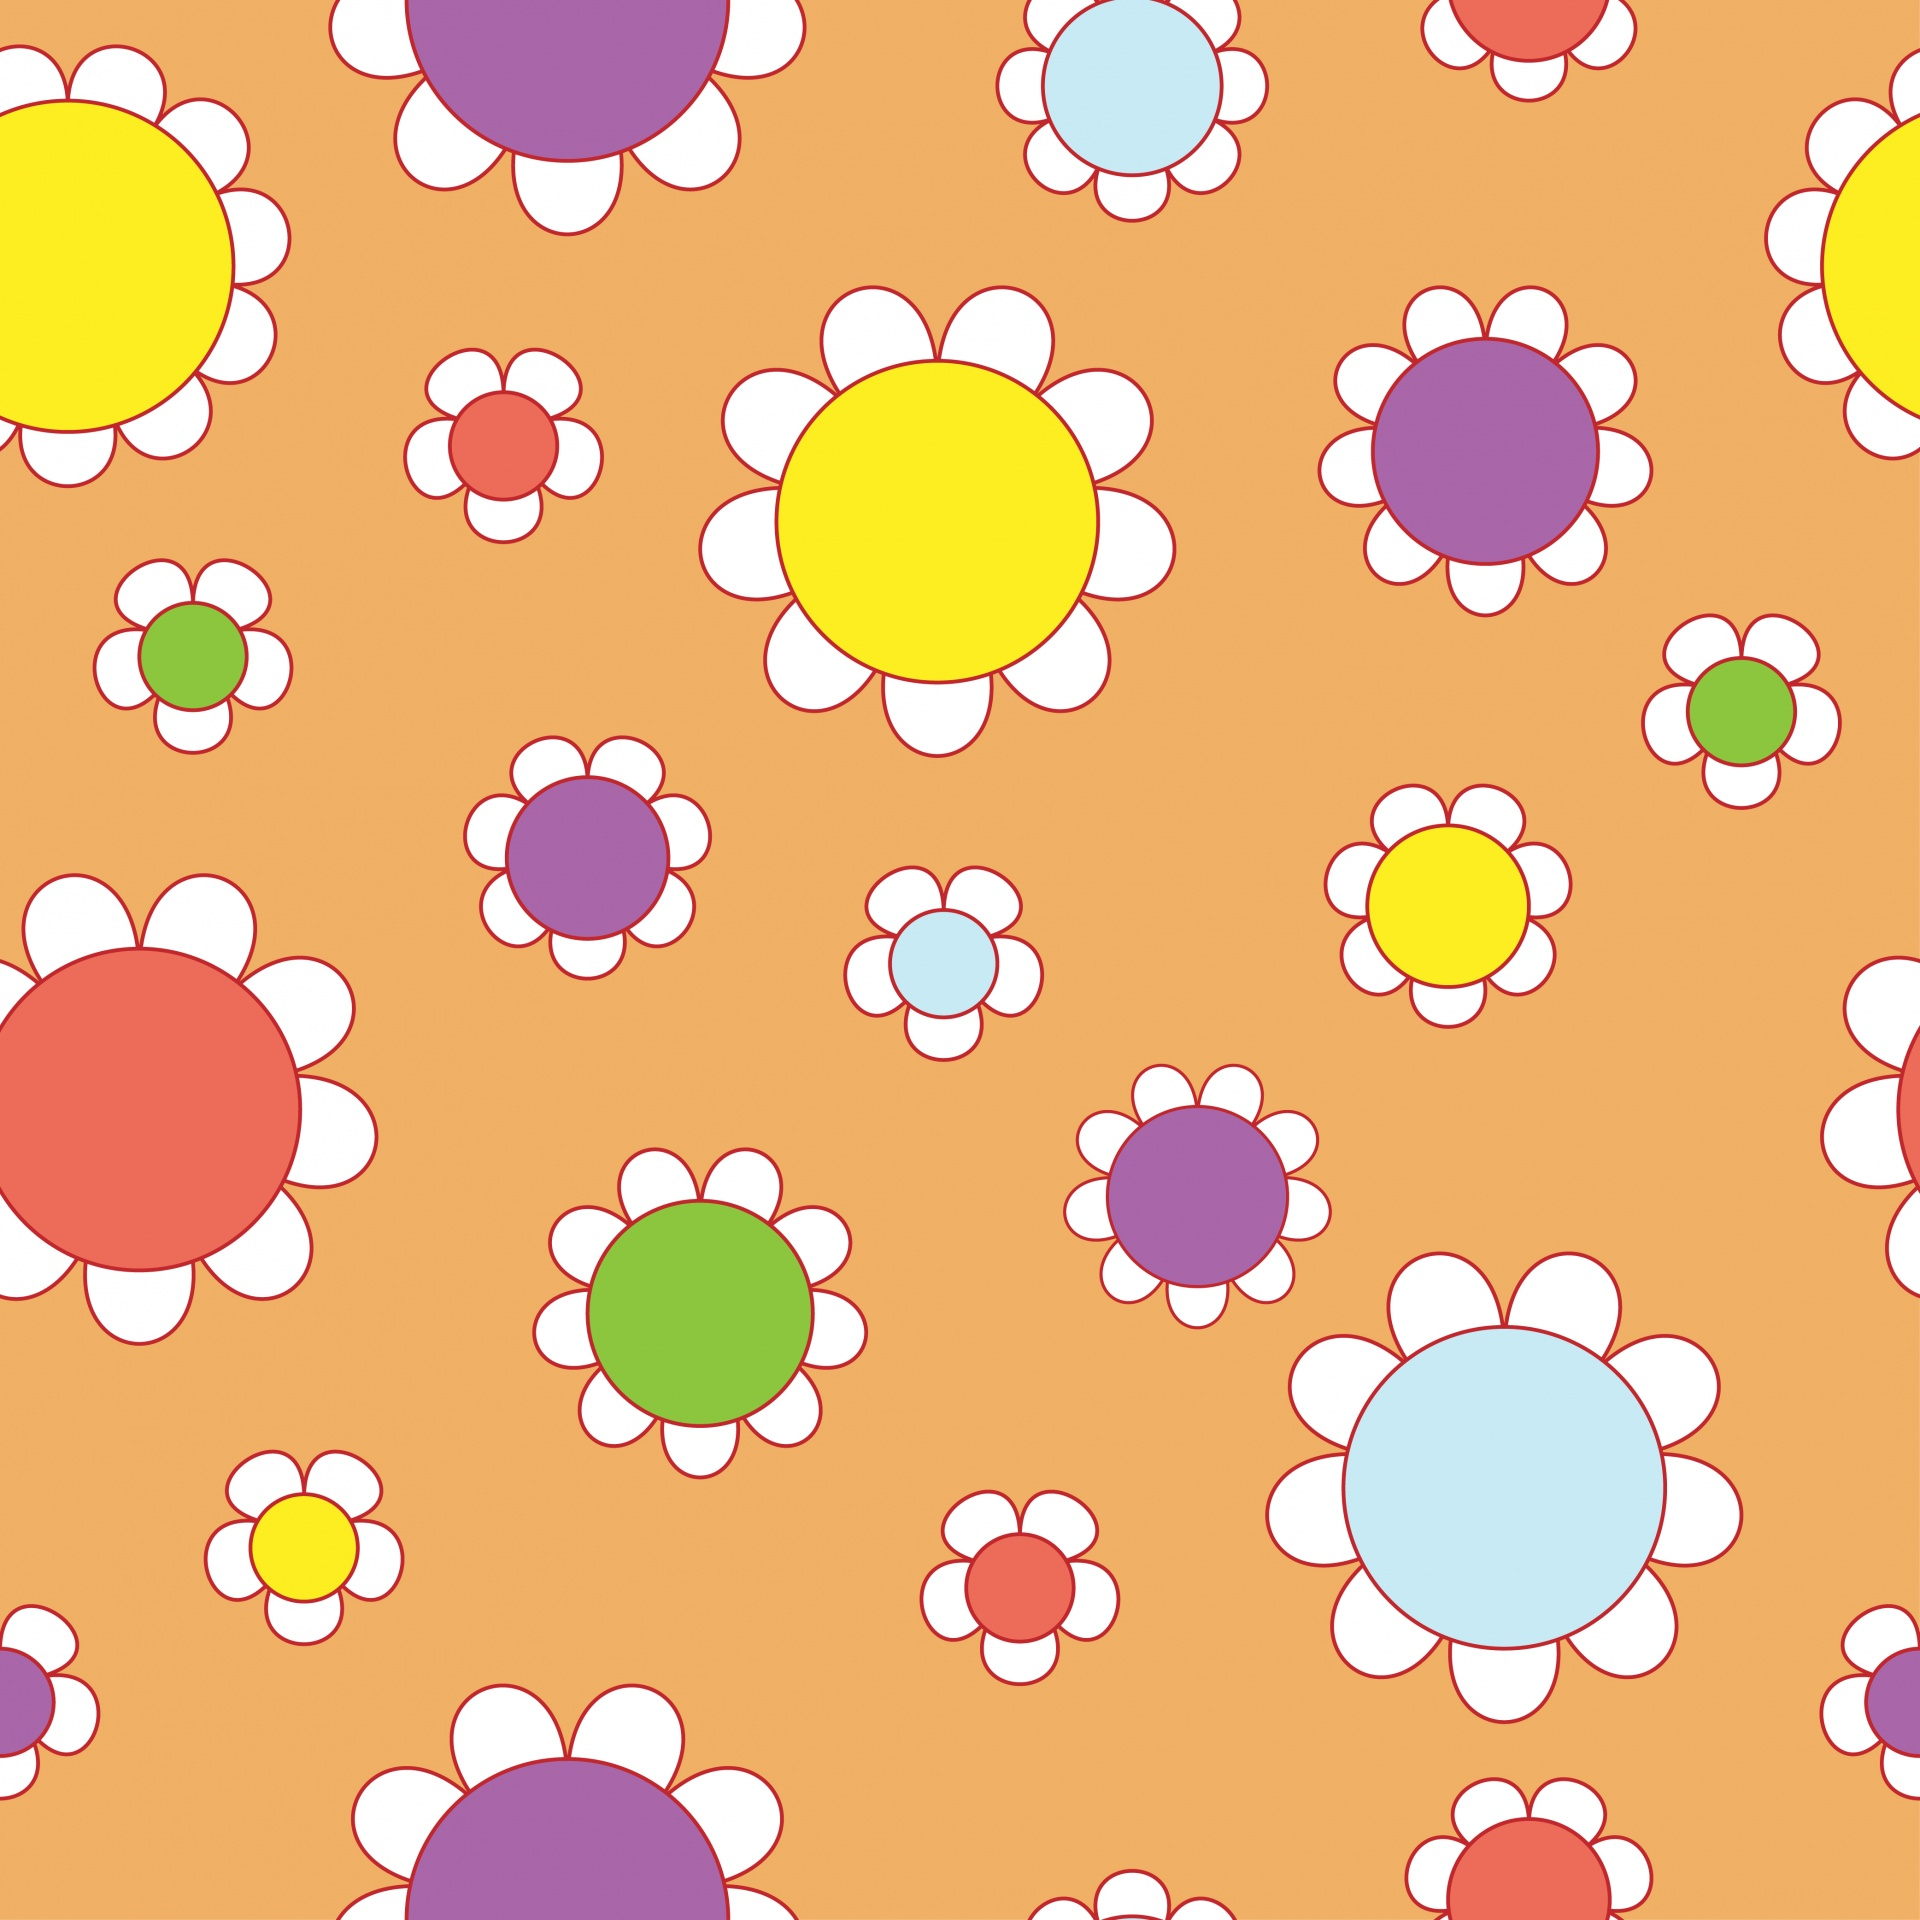 Floral Wallpaper Background 60s 1960s Free Image From Needpix Com